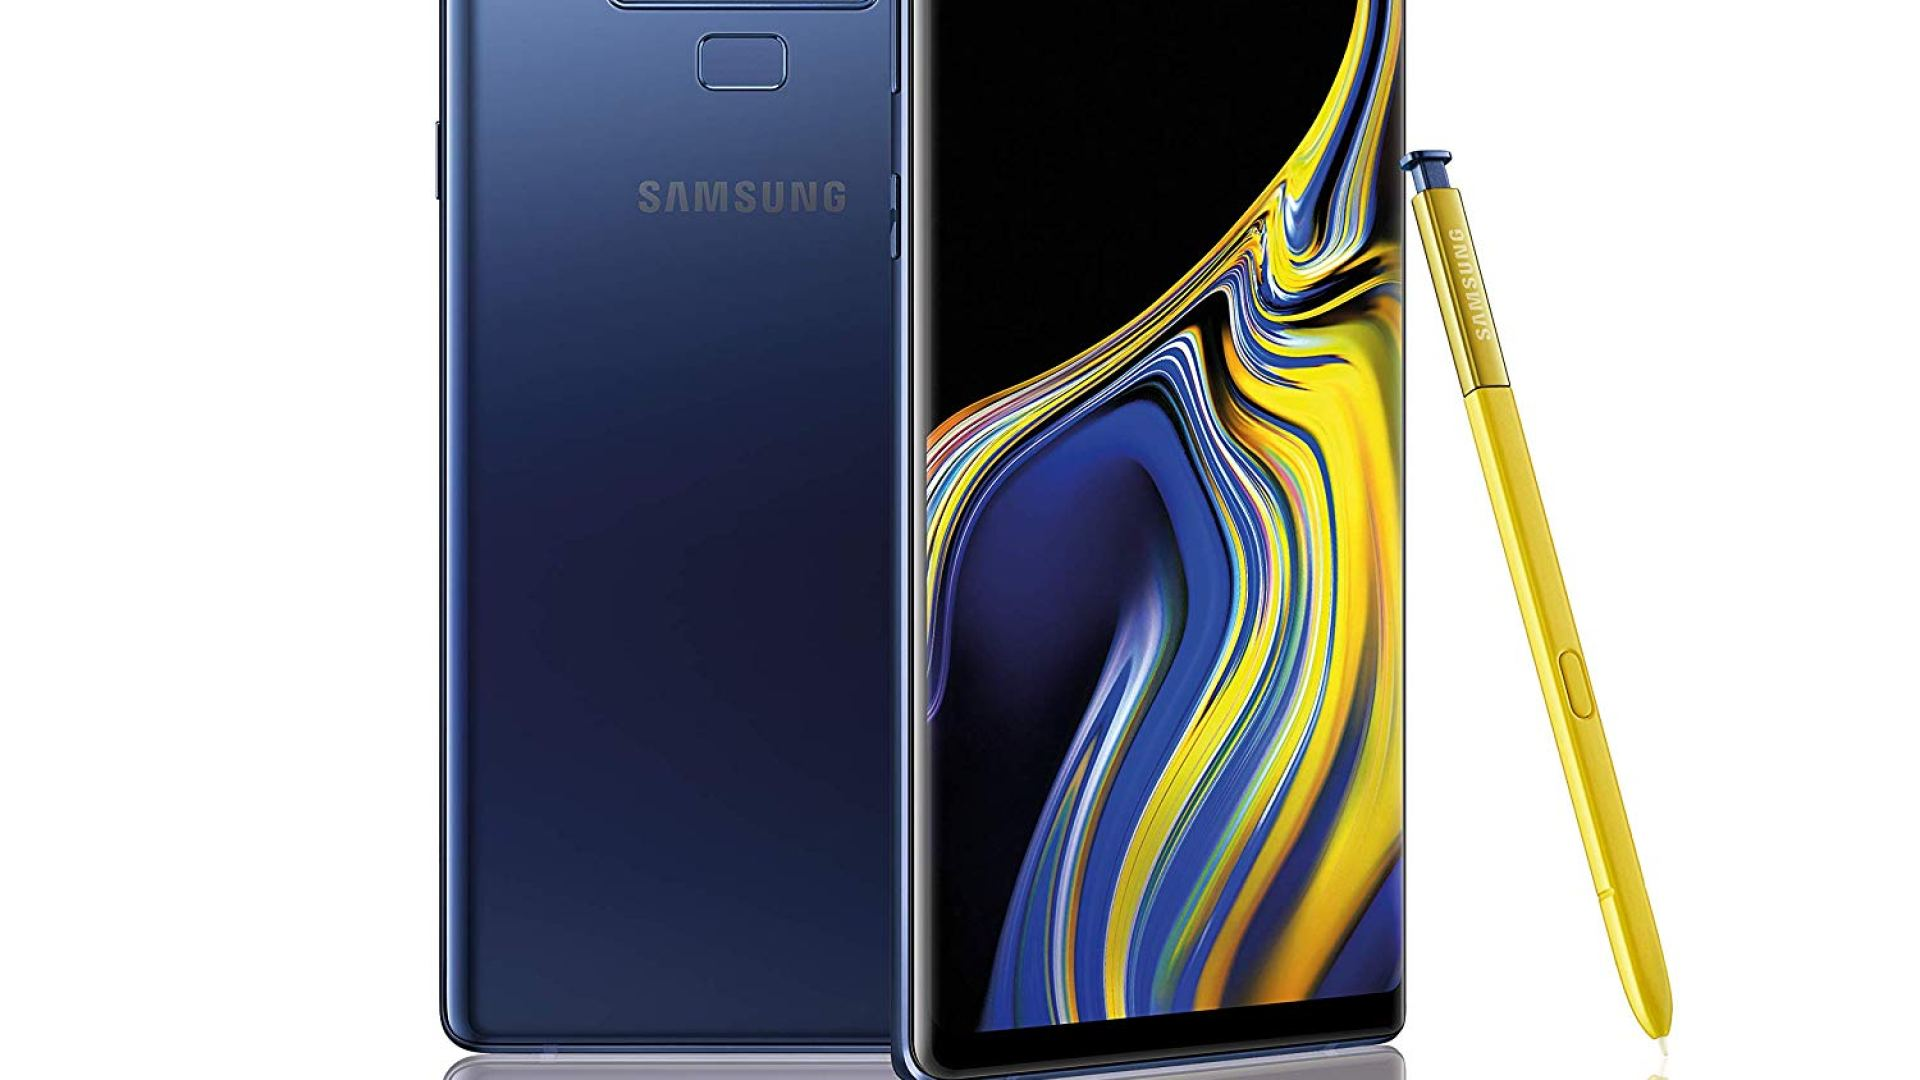 """Note 7-like fire fears as Samsung Note 9 battery starts """"smoking"""" according to lawsuit - MSPoweruser"""